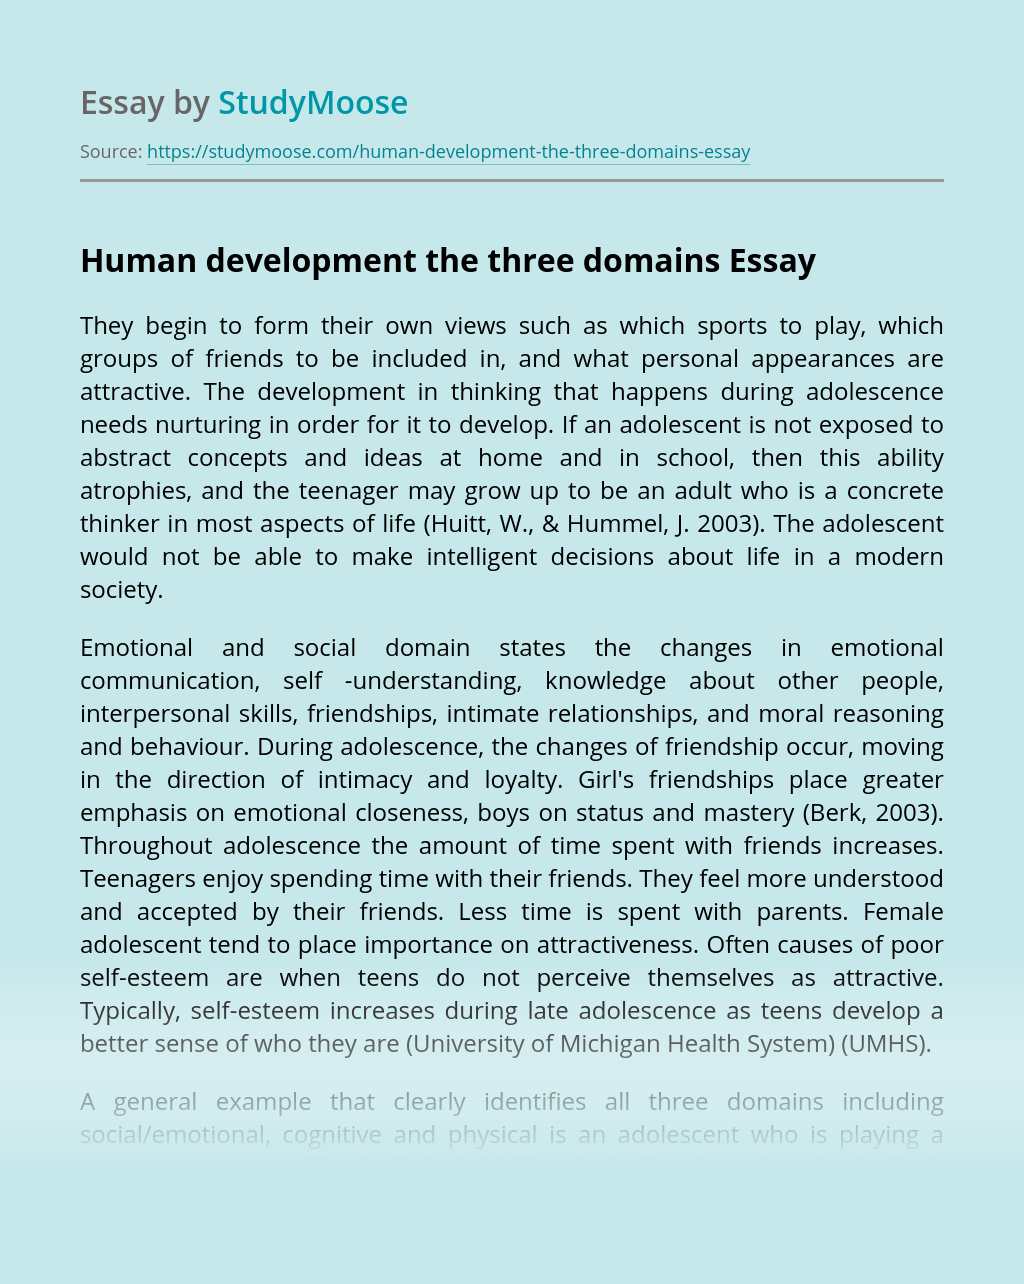 Human development the three domains